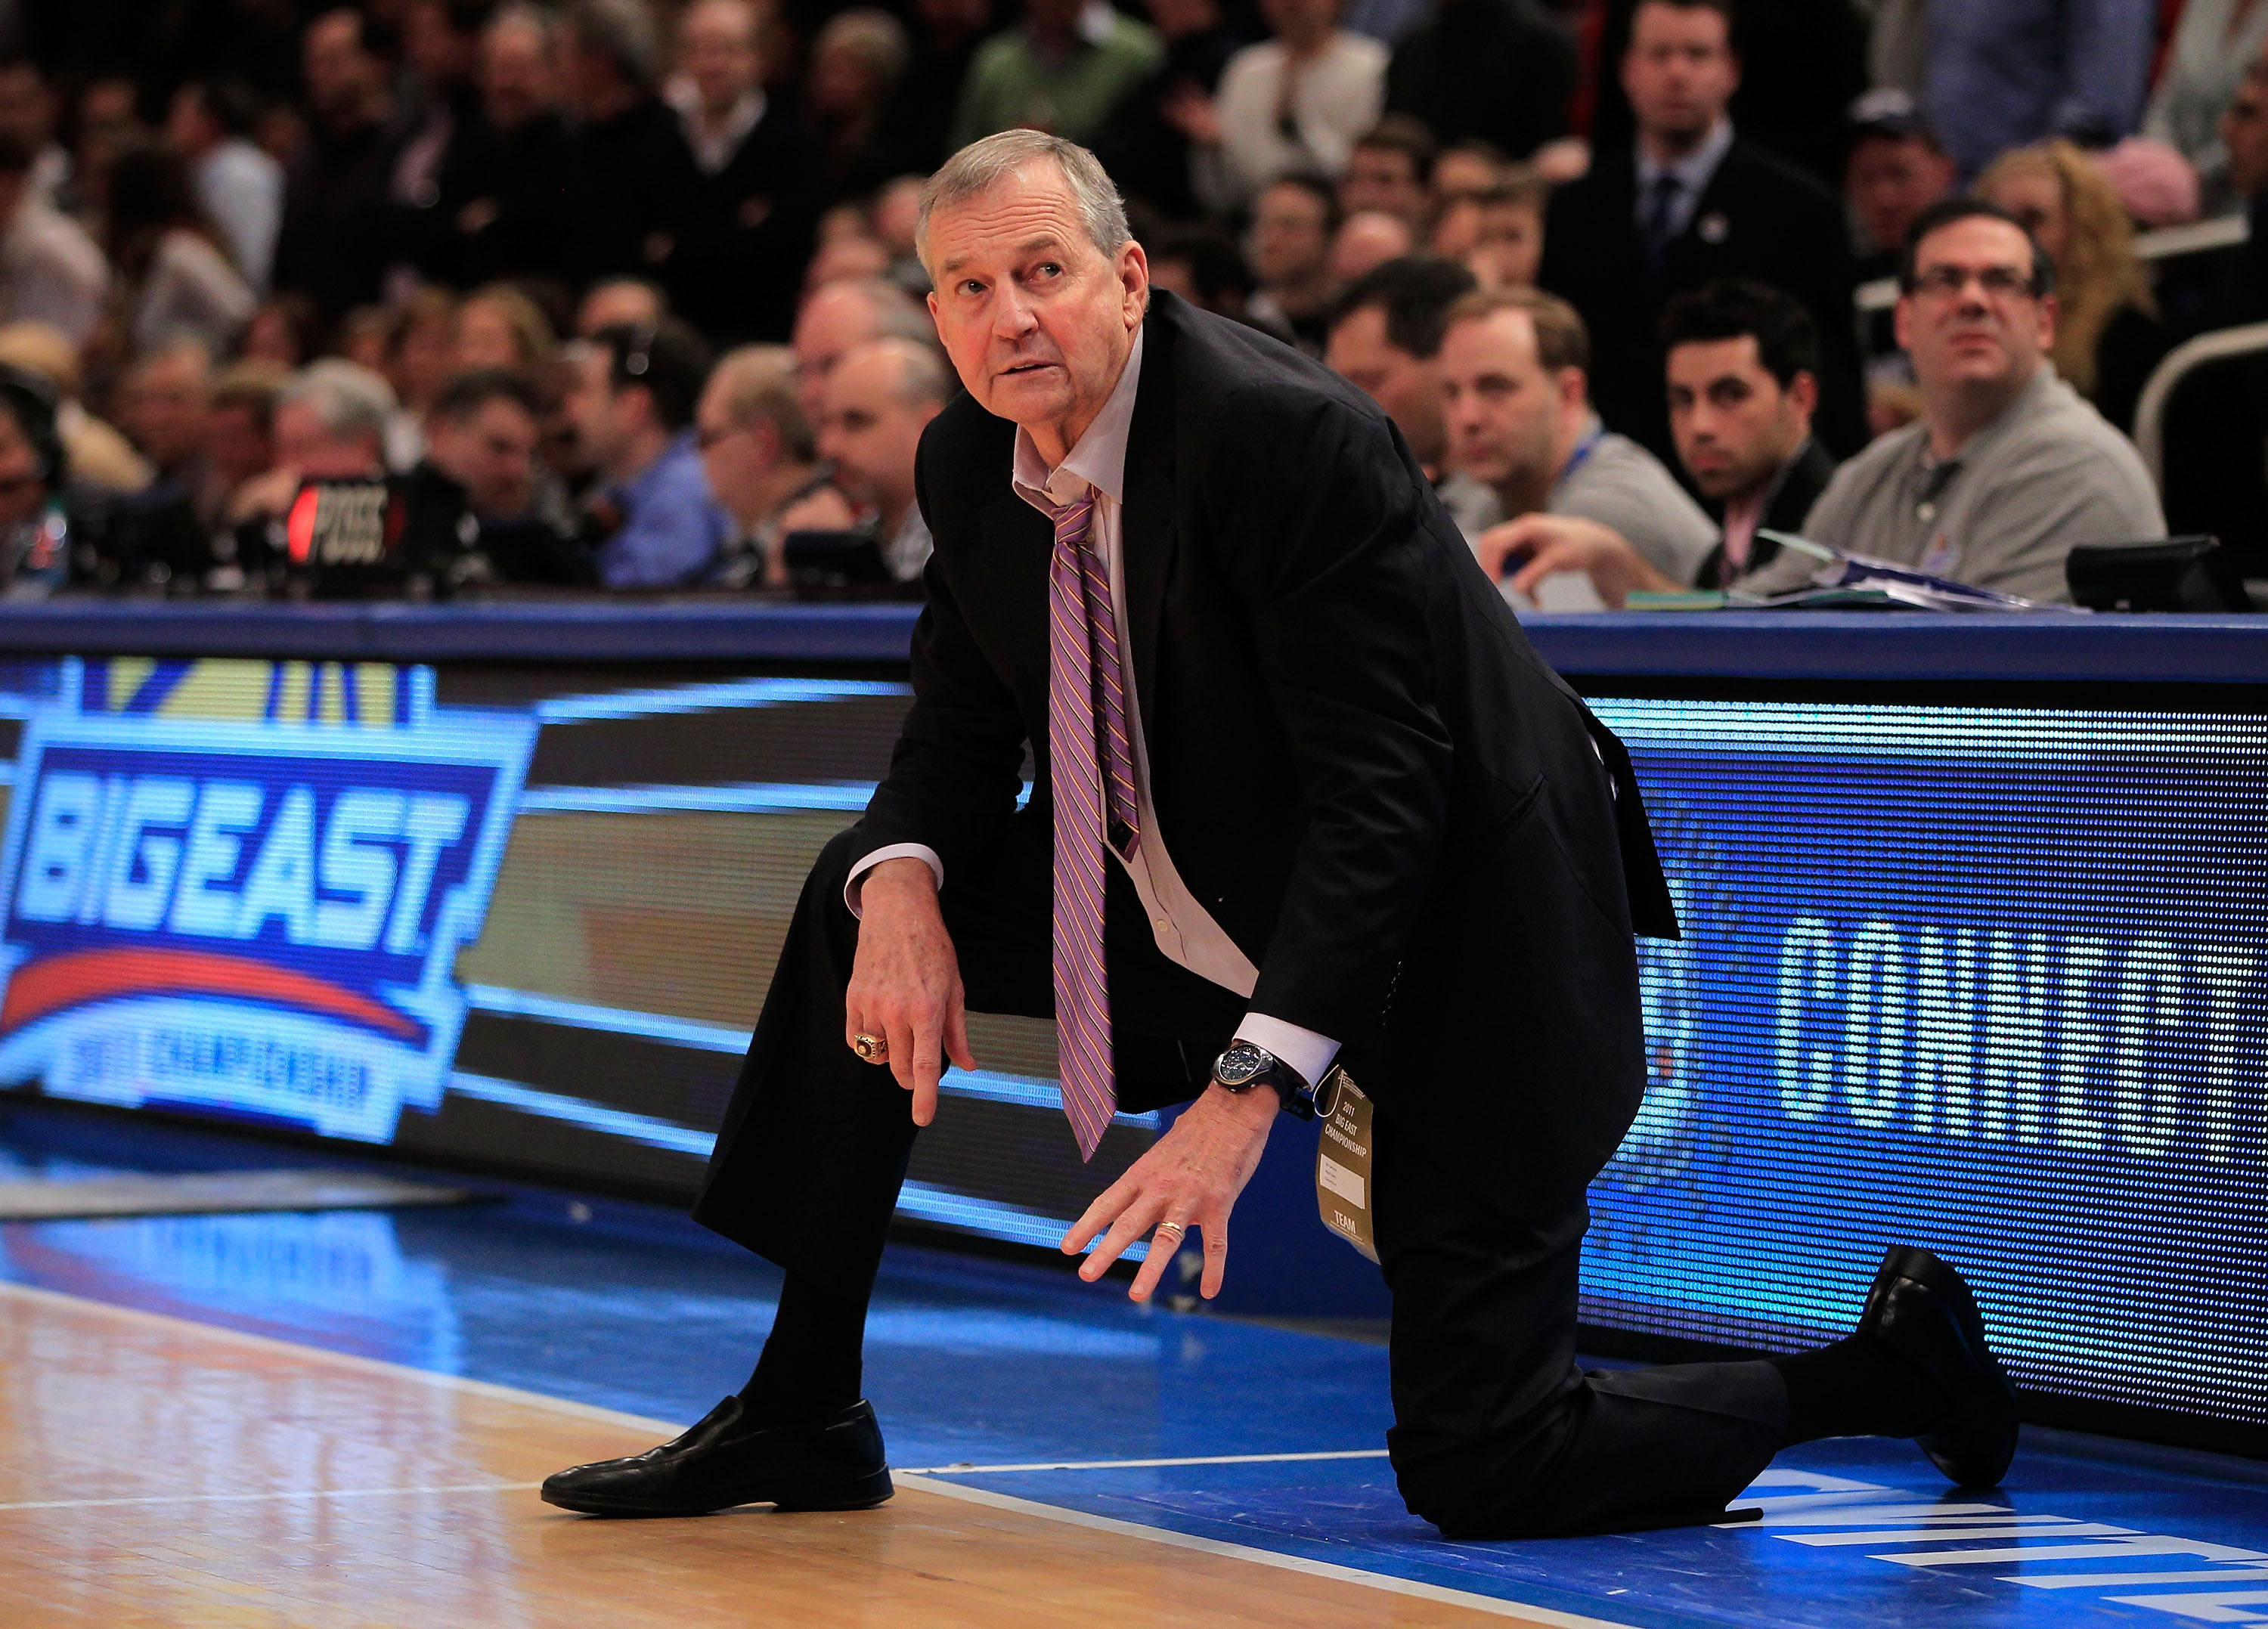 NEW YORK, NY - MARCH 12: Head coach Jim Calhoun of the Connecticut Huskies looks on from the bench late in the game against the Louisville Cardinals during the championship of the 2011 Big East Men's Basketball Tournament presented by American Eagle Outfi